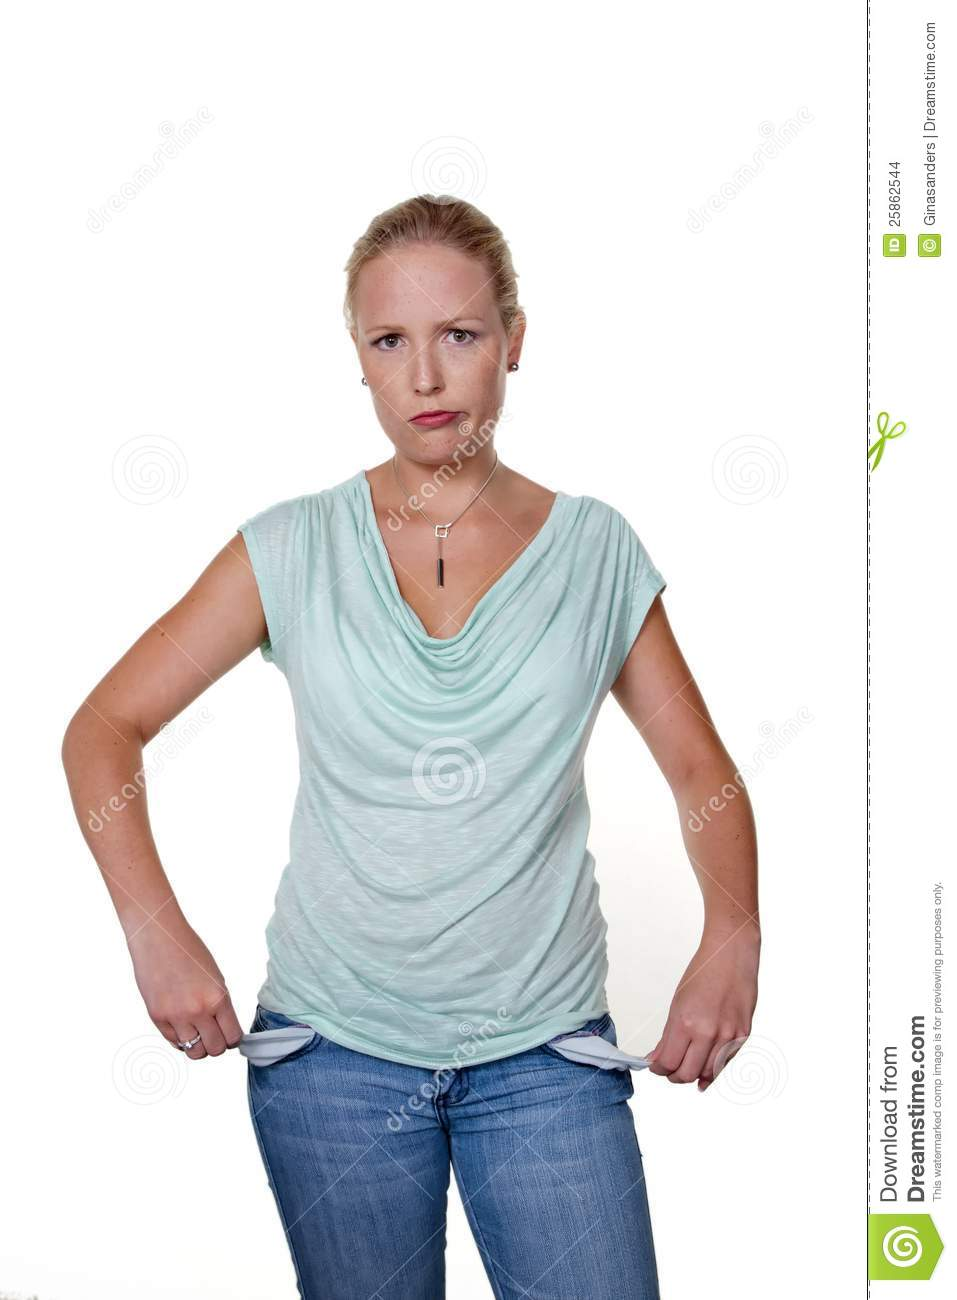 Woman With Empty Pockets Stock Images - Image: 25862544